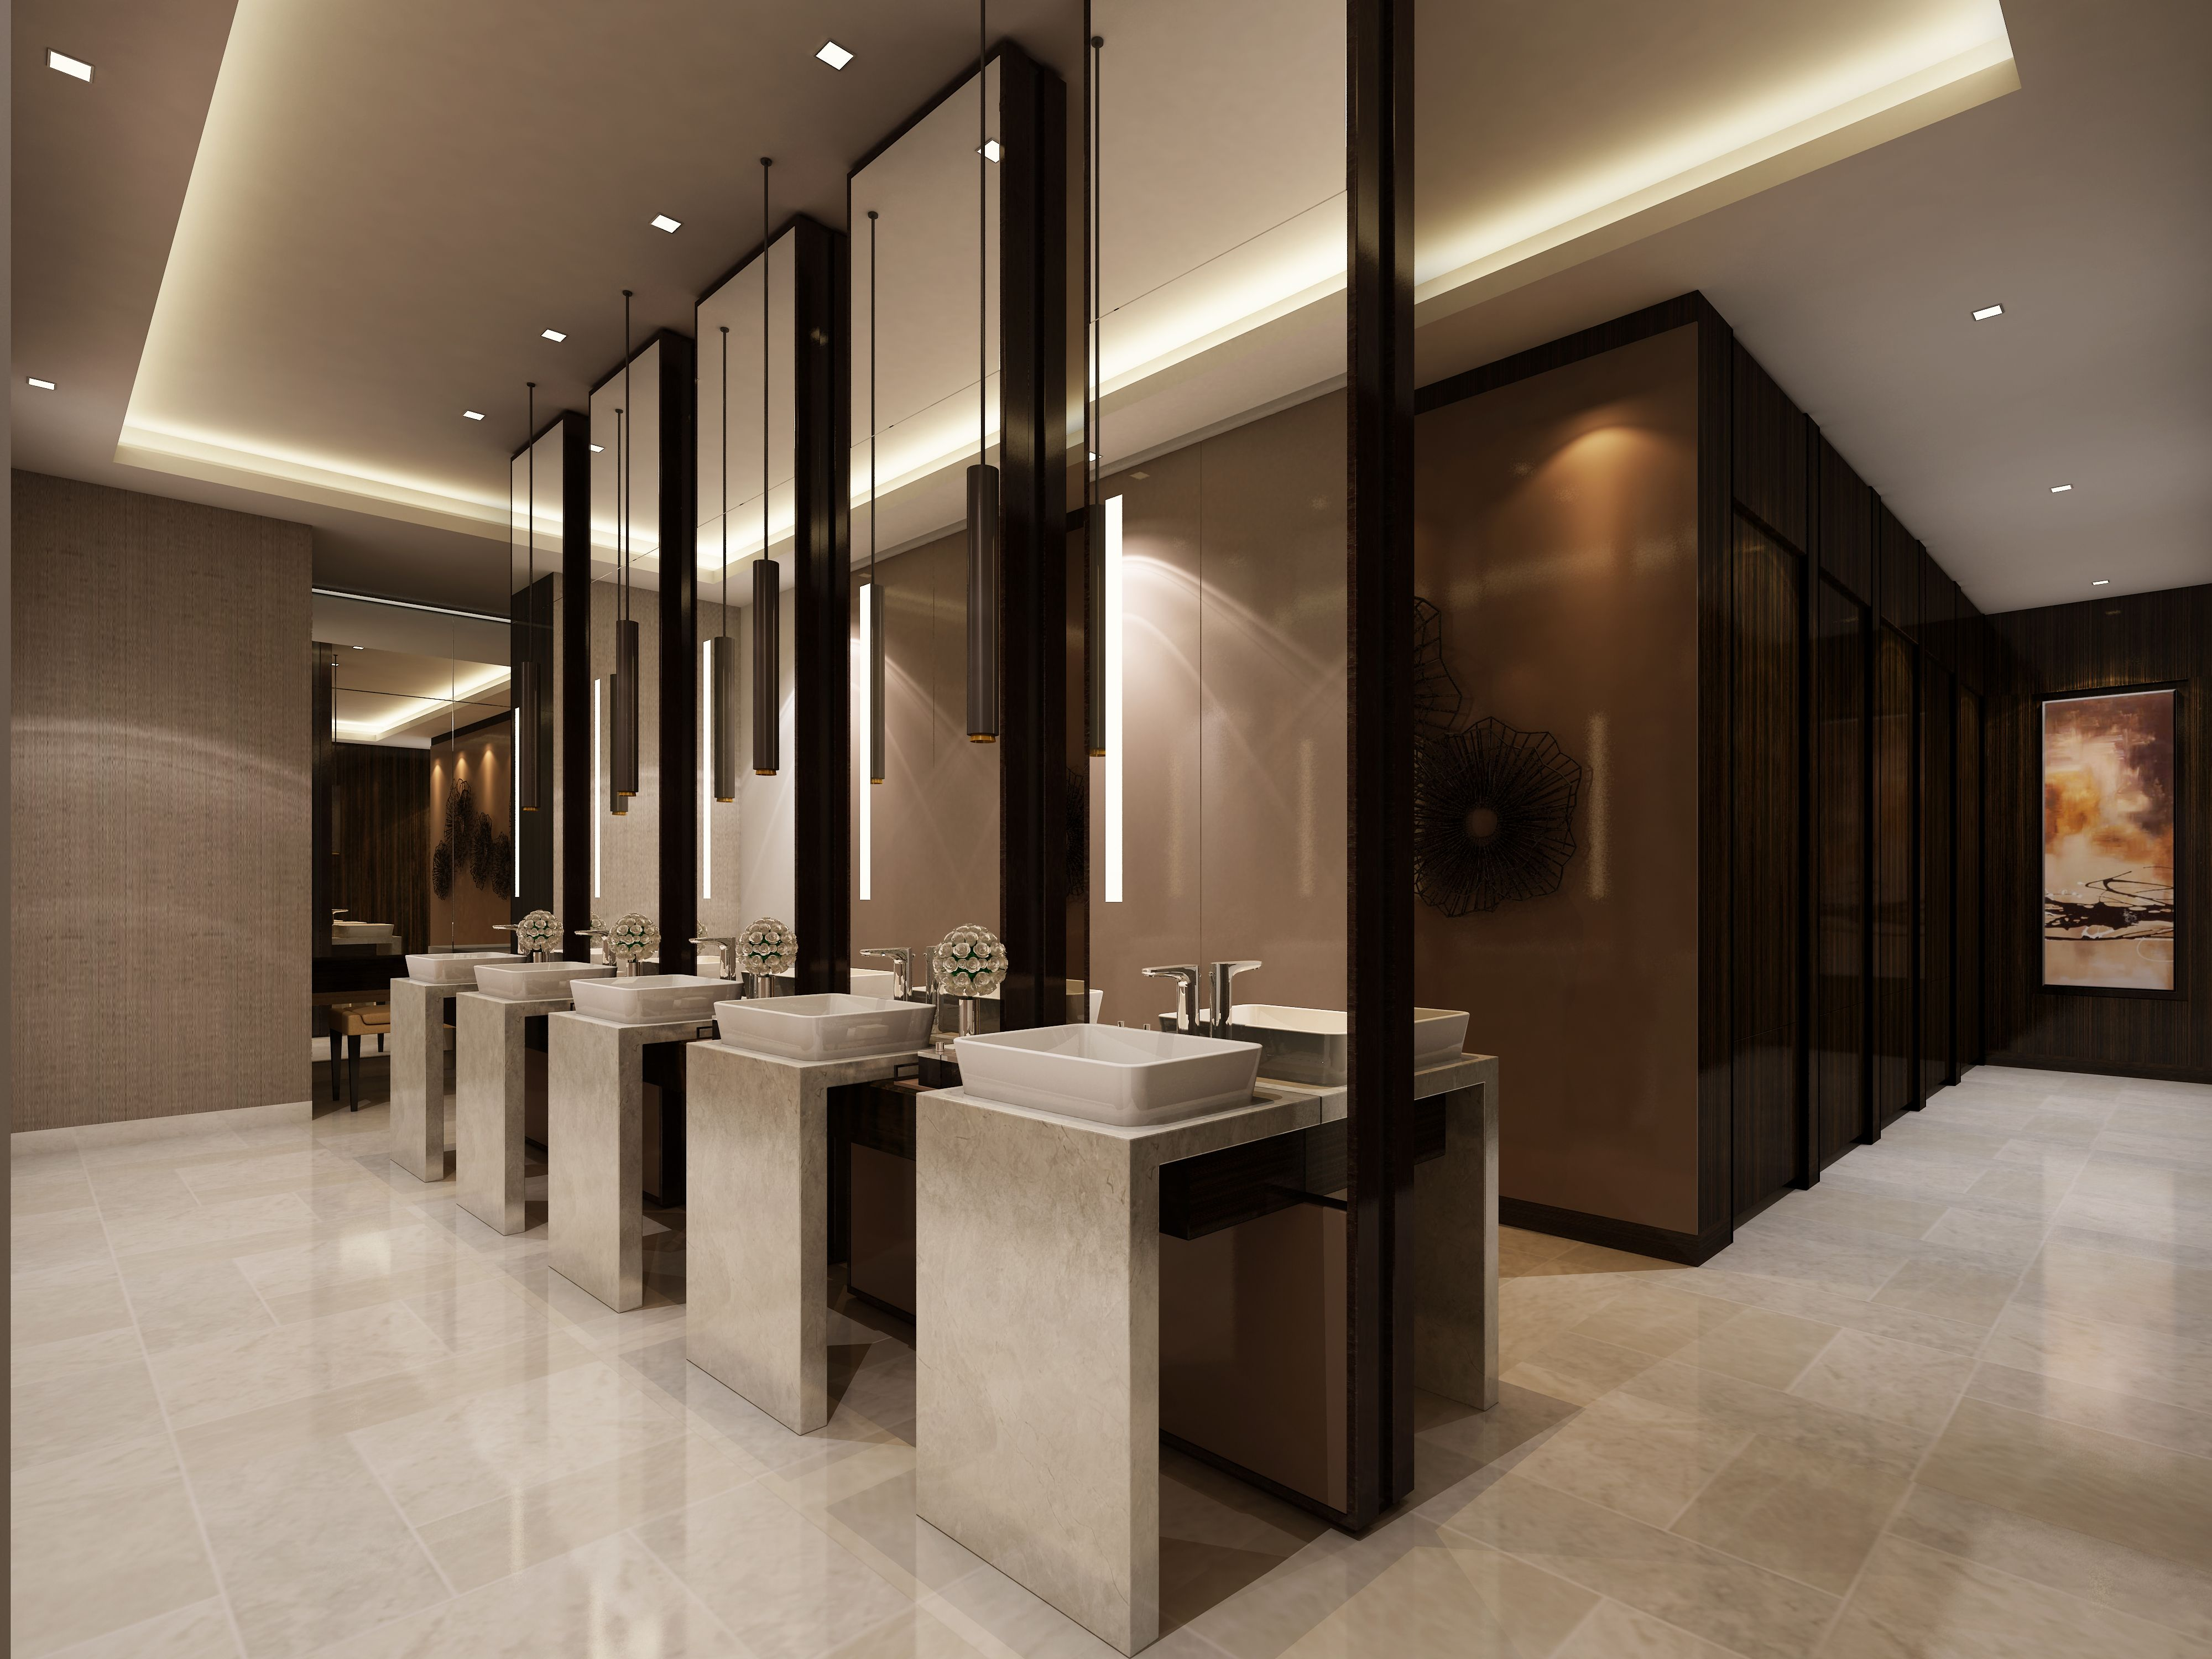 hotel ada restroom google search - Restroom Design